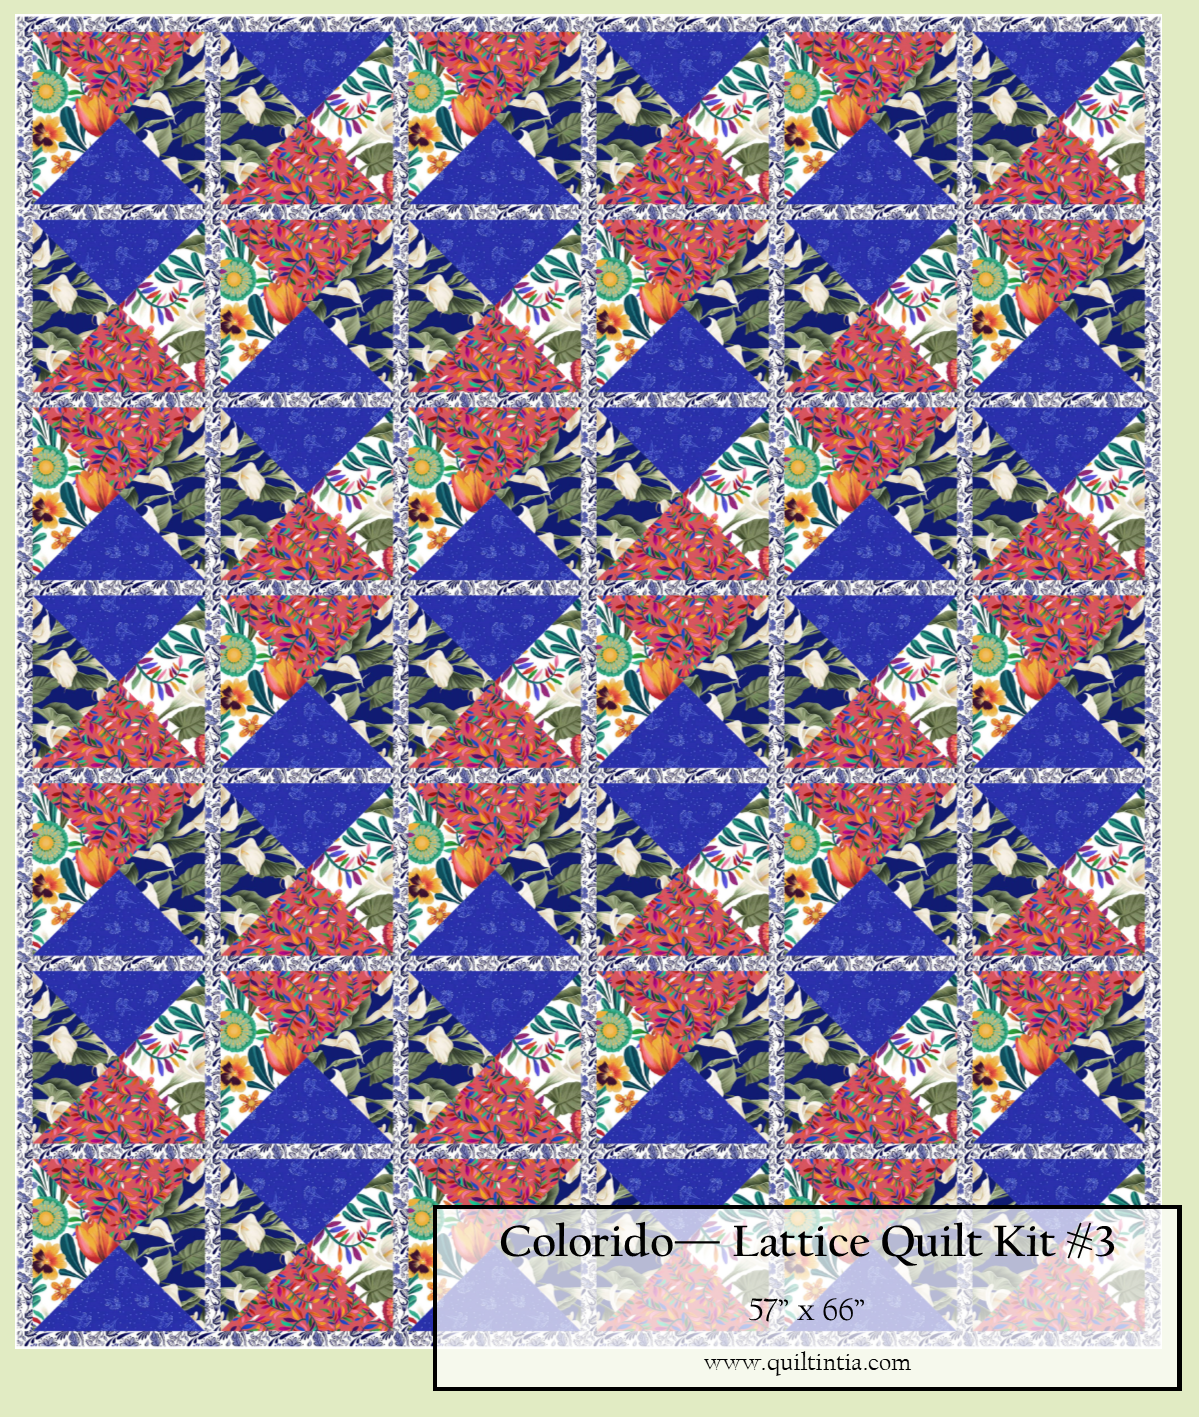 Colorido - Lattice Quilt Kit #3